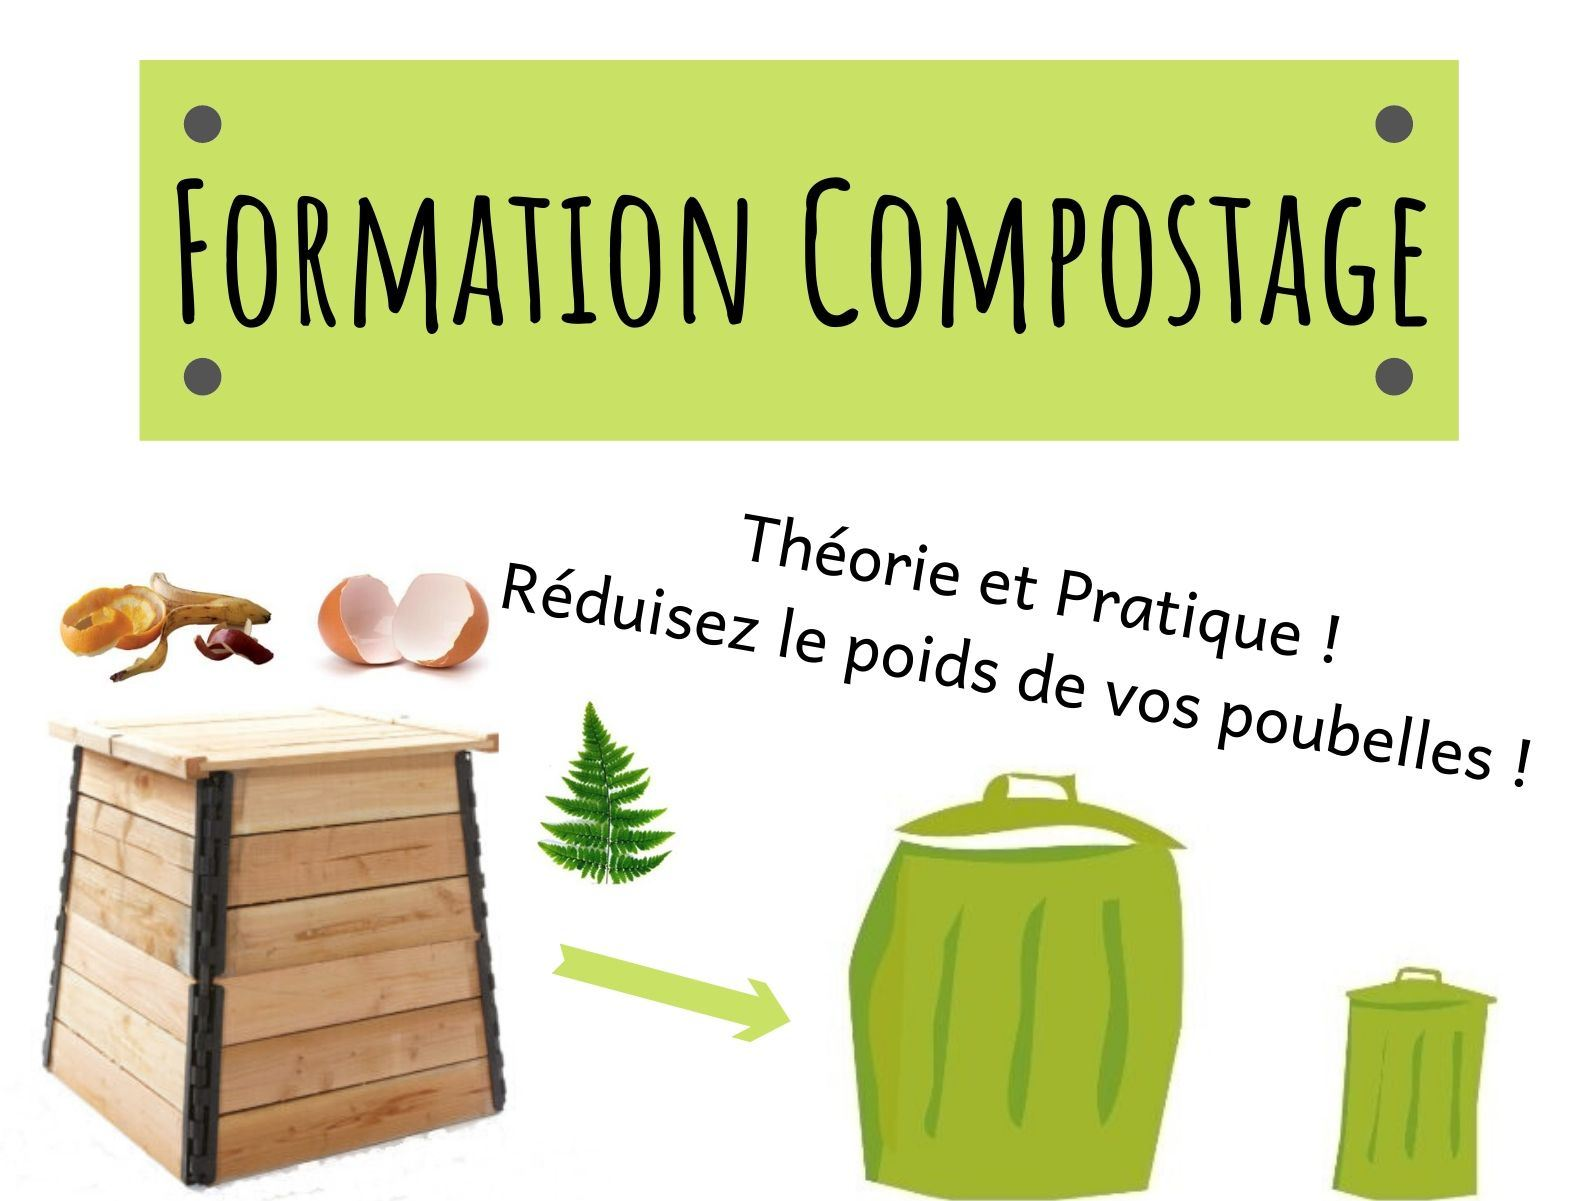 formation compostage sud retz atlantique